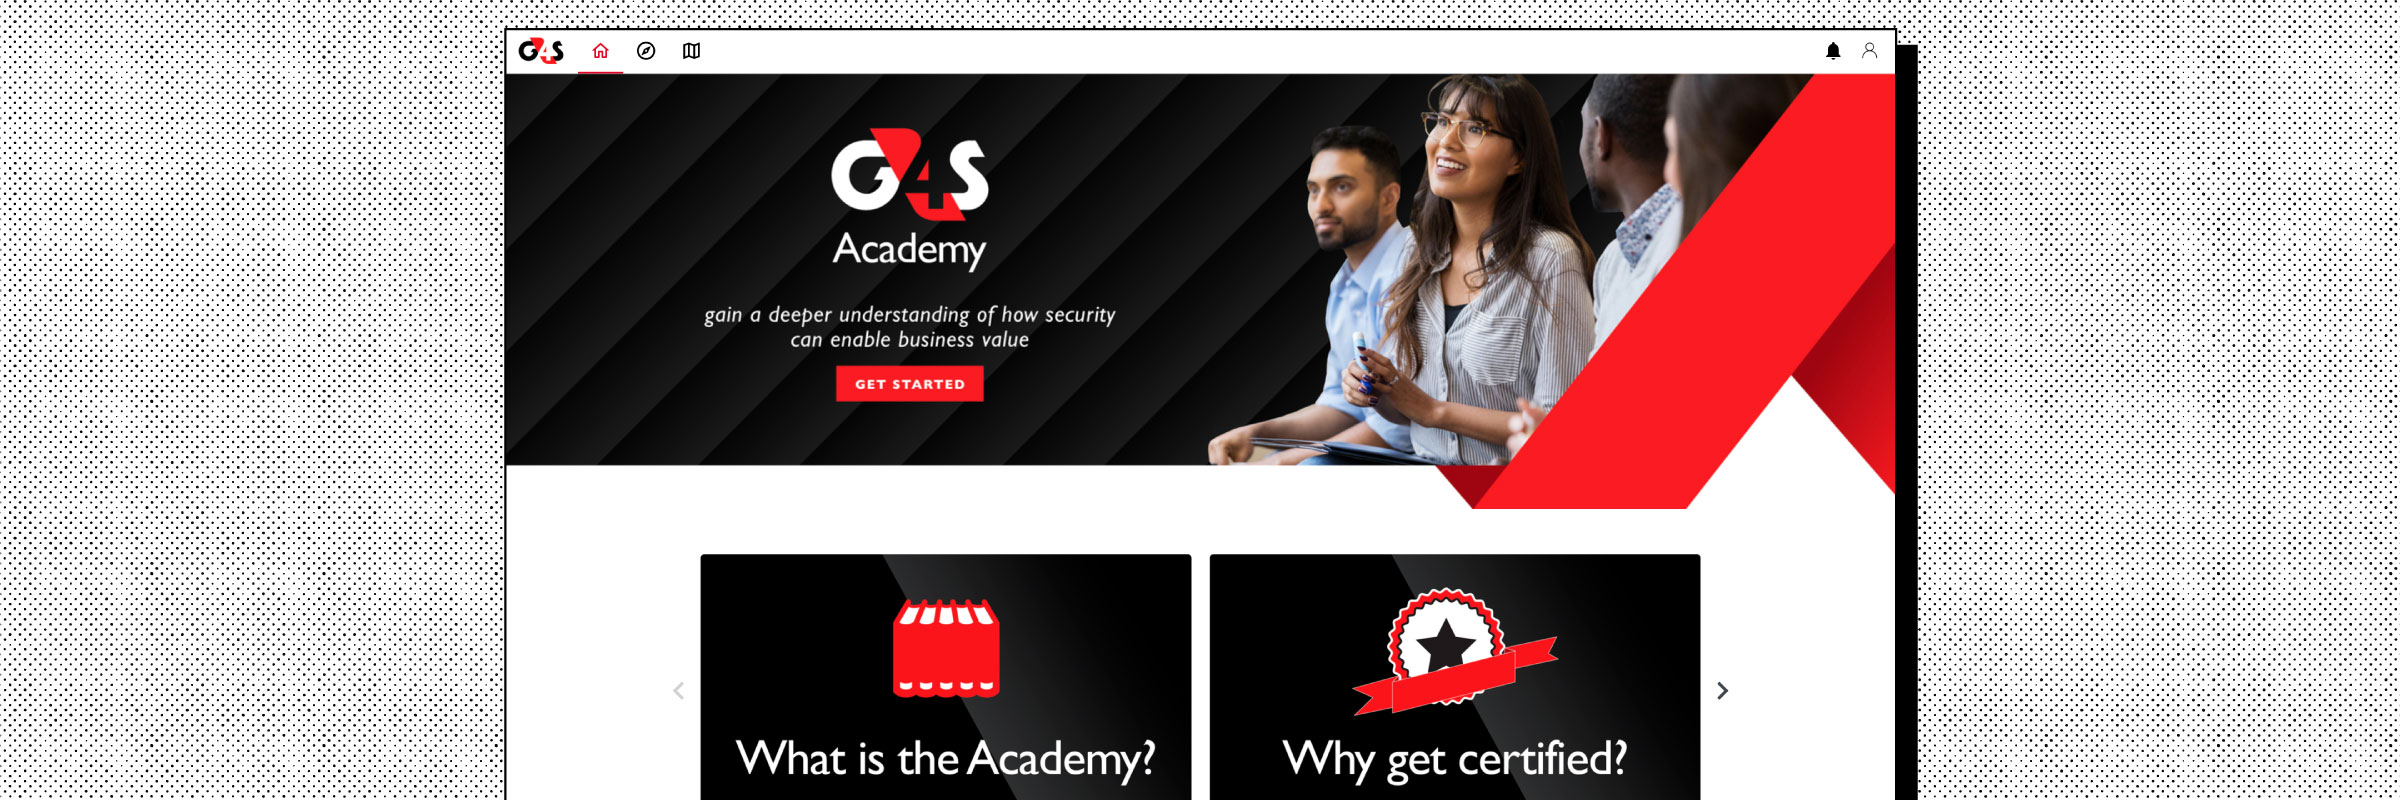 Homepage example of the G4S website on the Intellum Platform